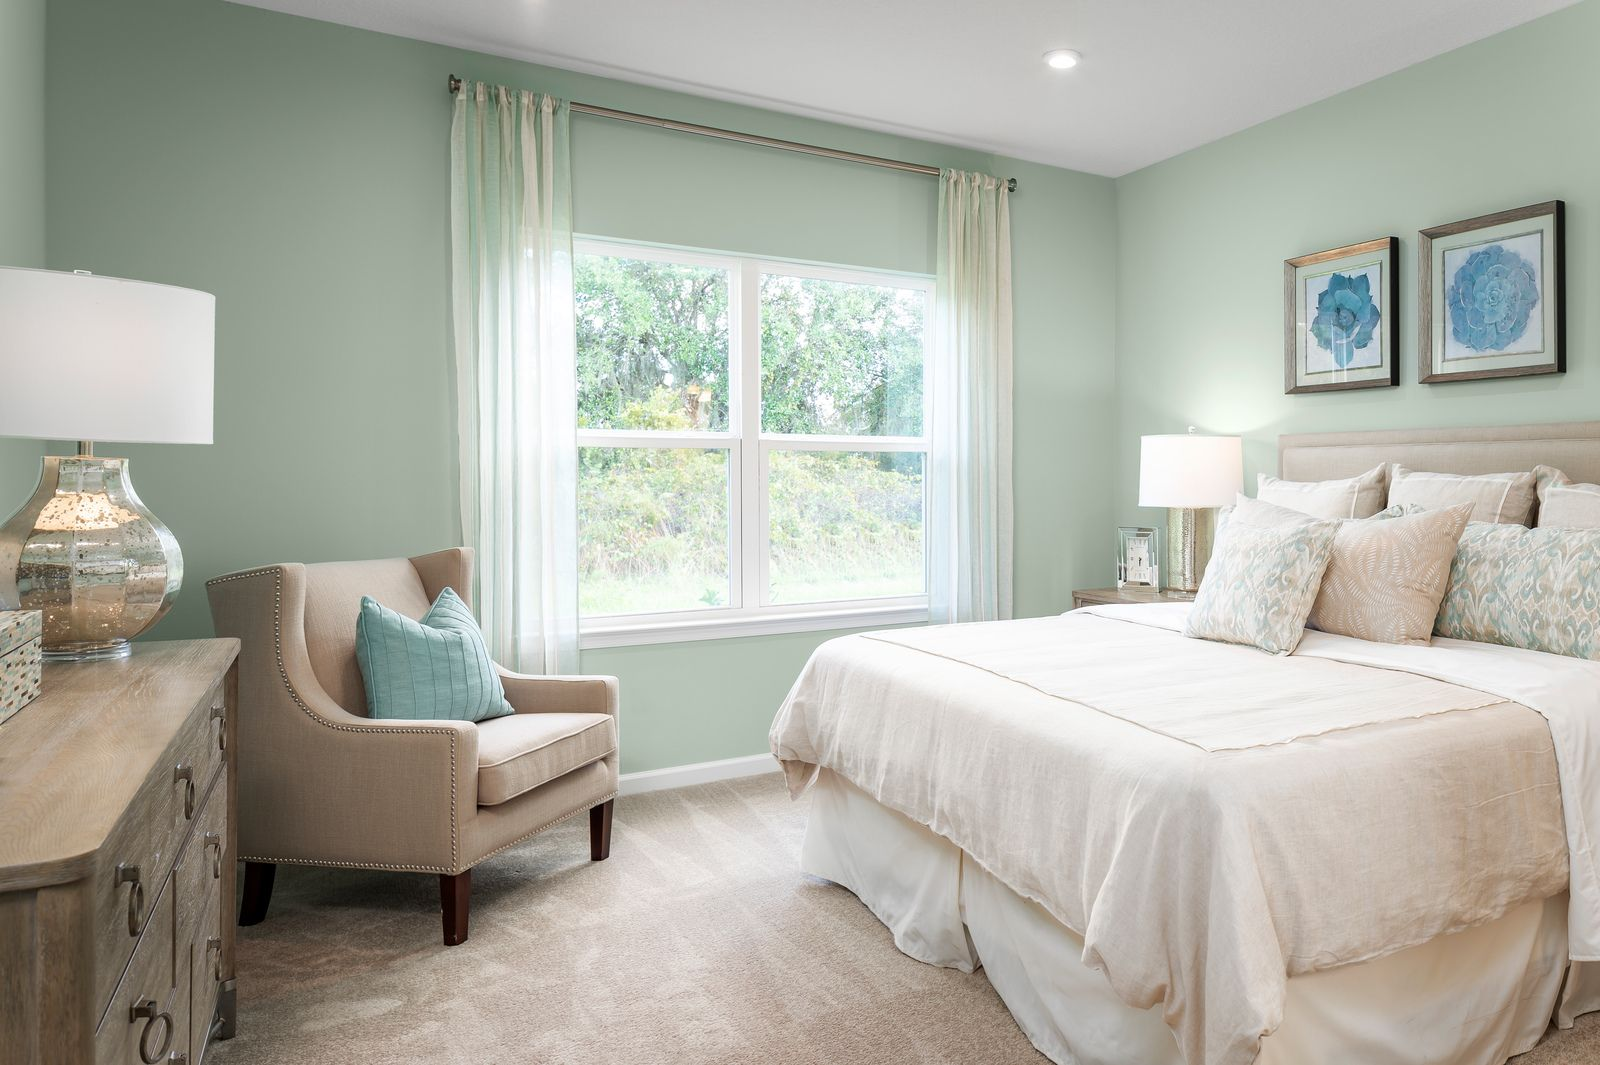 Bedroom featured in the Panama By Ryan Homes in Orlando, FL